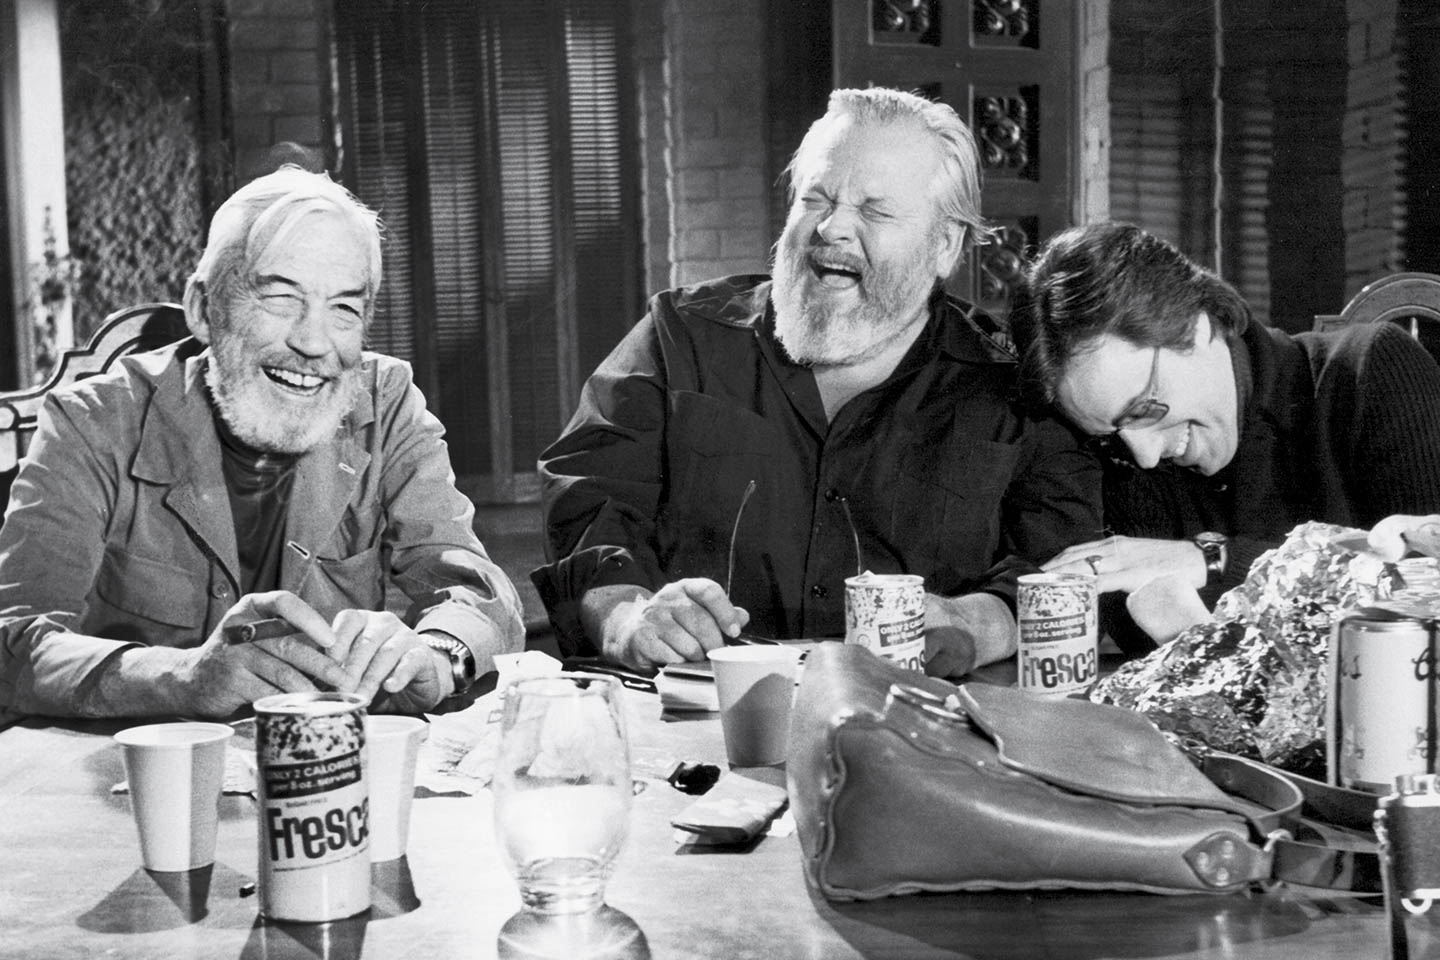 """A still from """"The Other Side of the Wind,"""" a long-awaited Orson Welles film."""